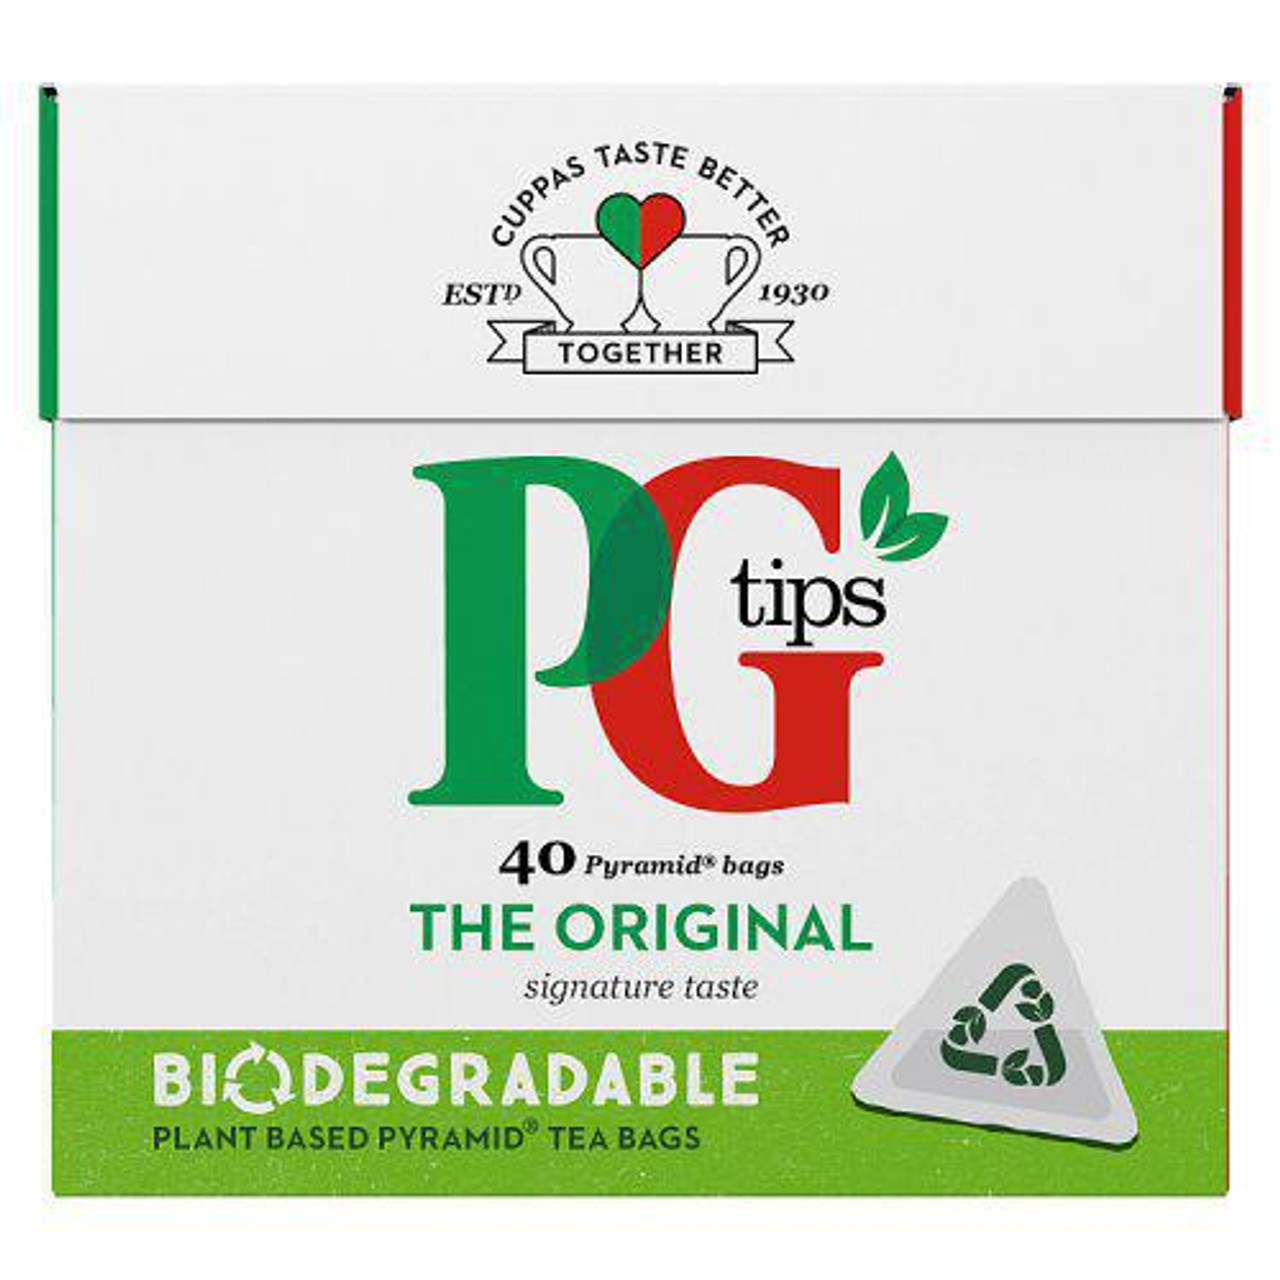 PG Tips, 40 pyramid teabags